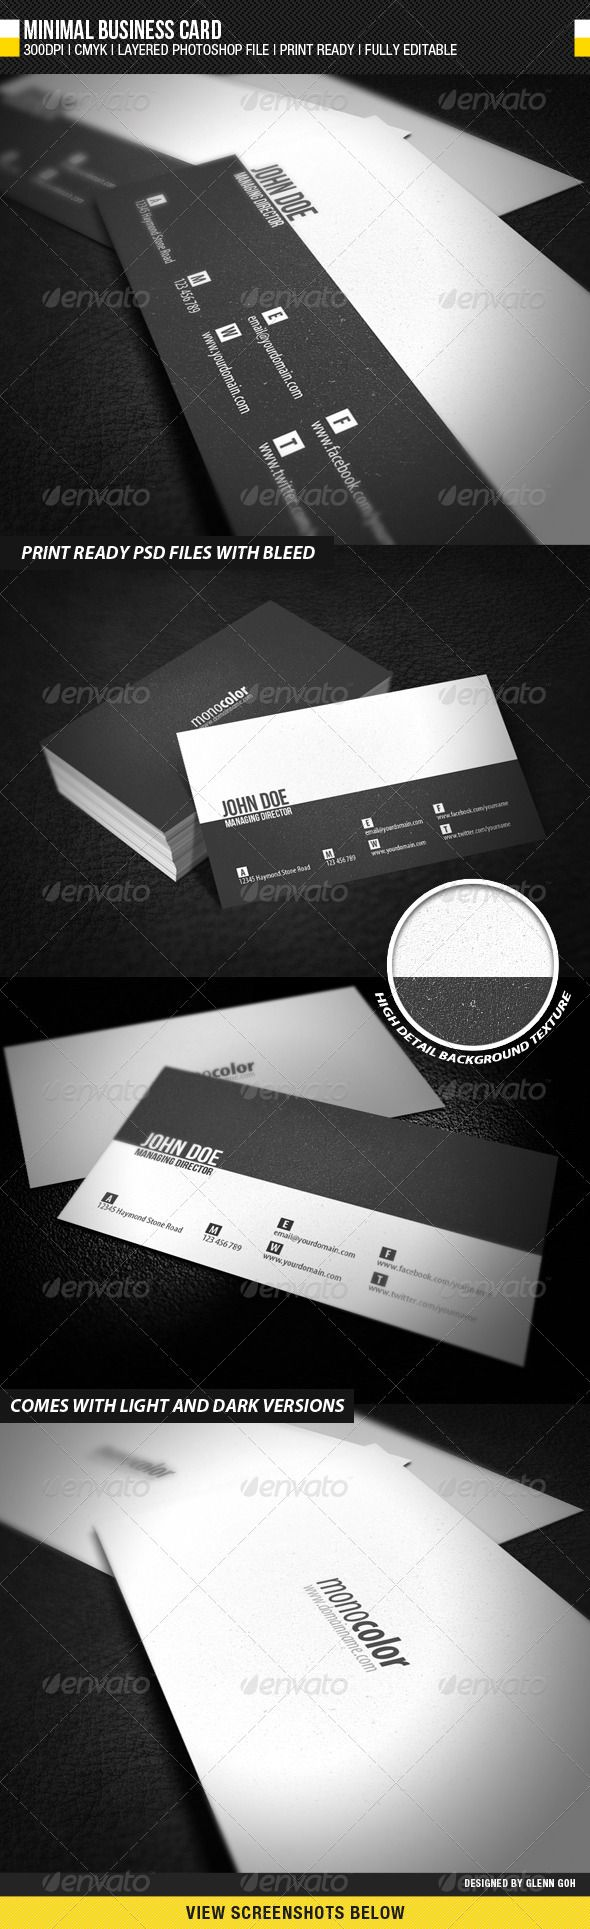 605 best business card template images on pinterest business minimal business card alramifo Images